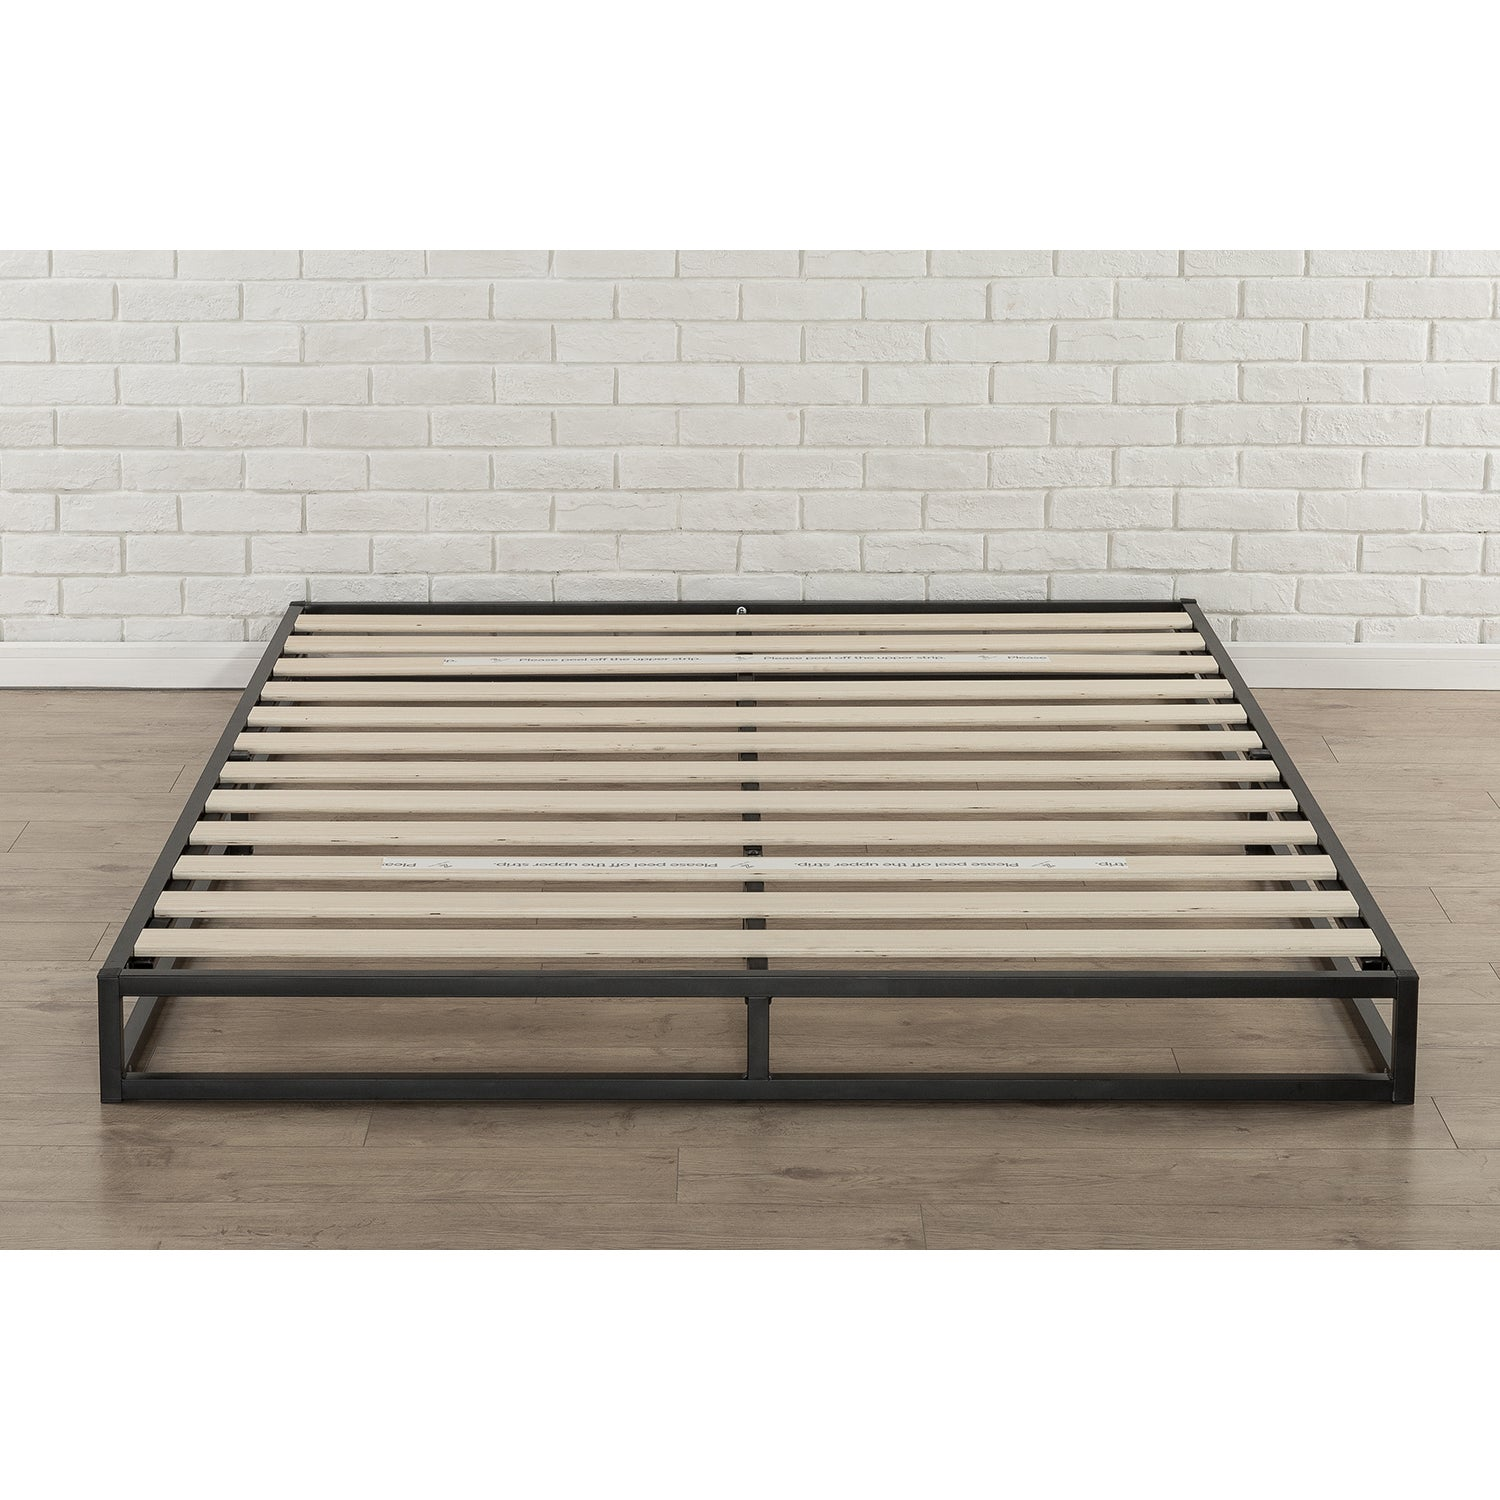 Priage By Zinus 6 Inch King Size Platforma Low Profile Bed Frame Overstock 20603793